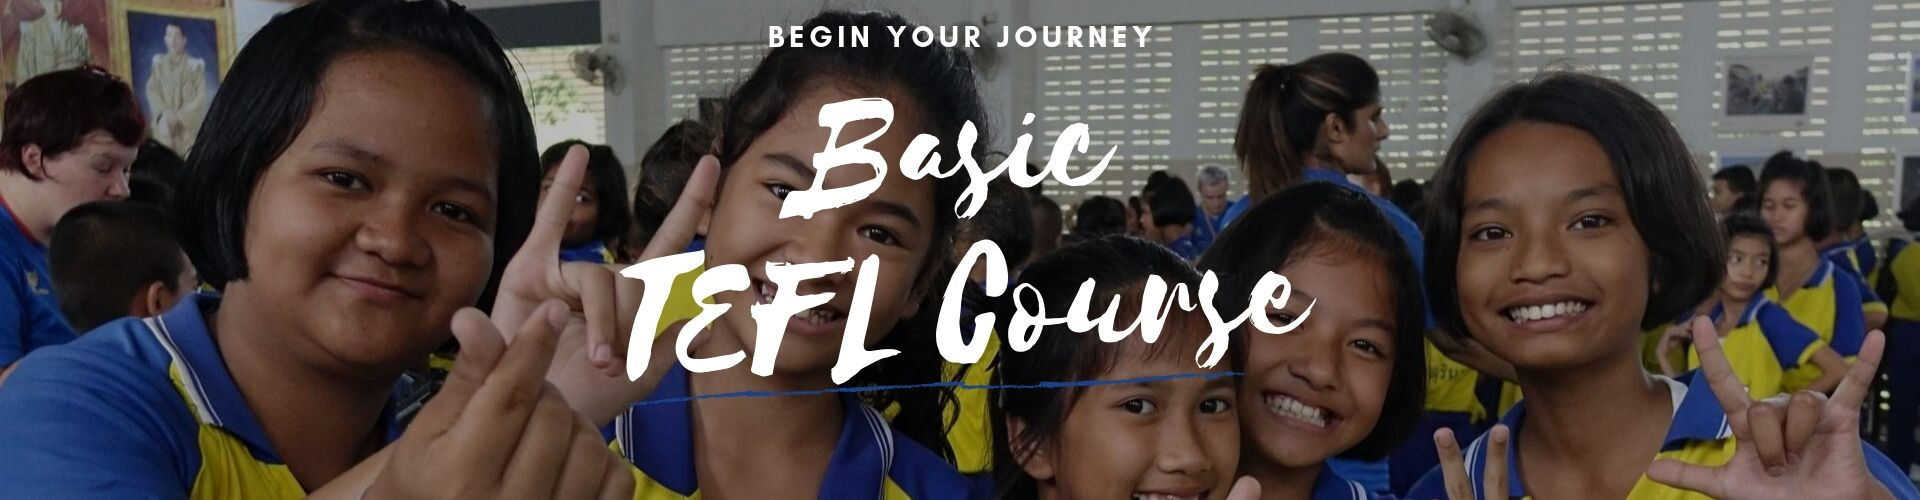 Basic TEFL Course